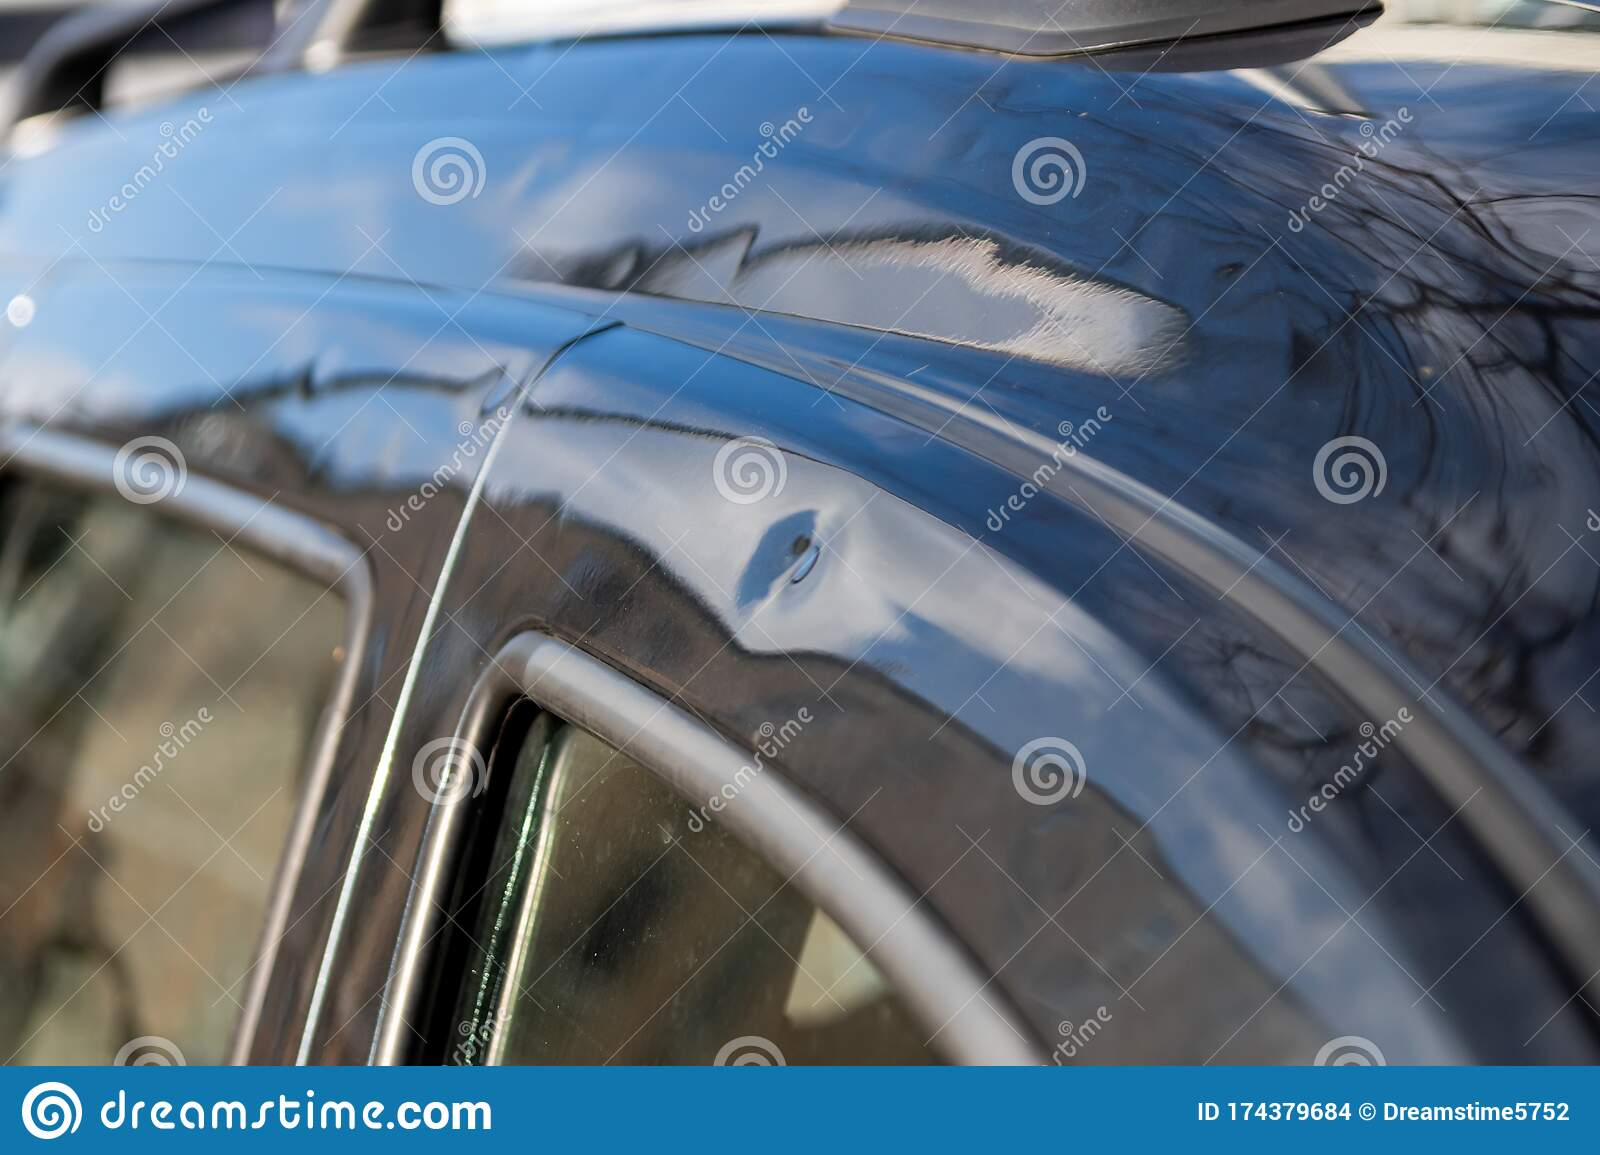 Car Roof With Many Hail Damage Dents Show The Forces Of Nature And The Importance Of Car Insurance And A Replacement Value Stock Photo Image Of Dashboard Automotive 174379684